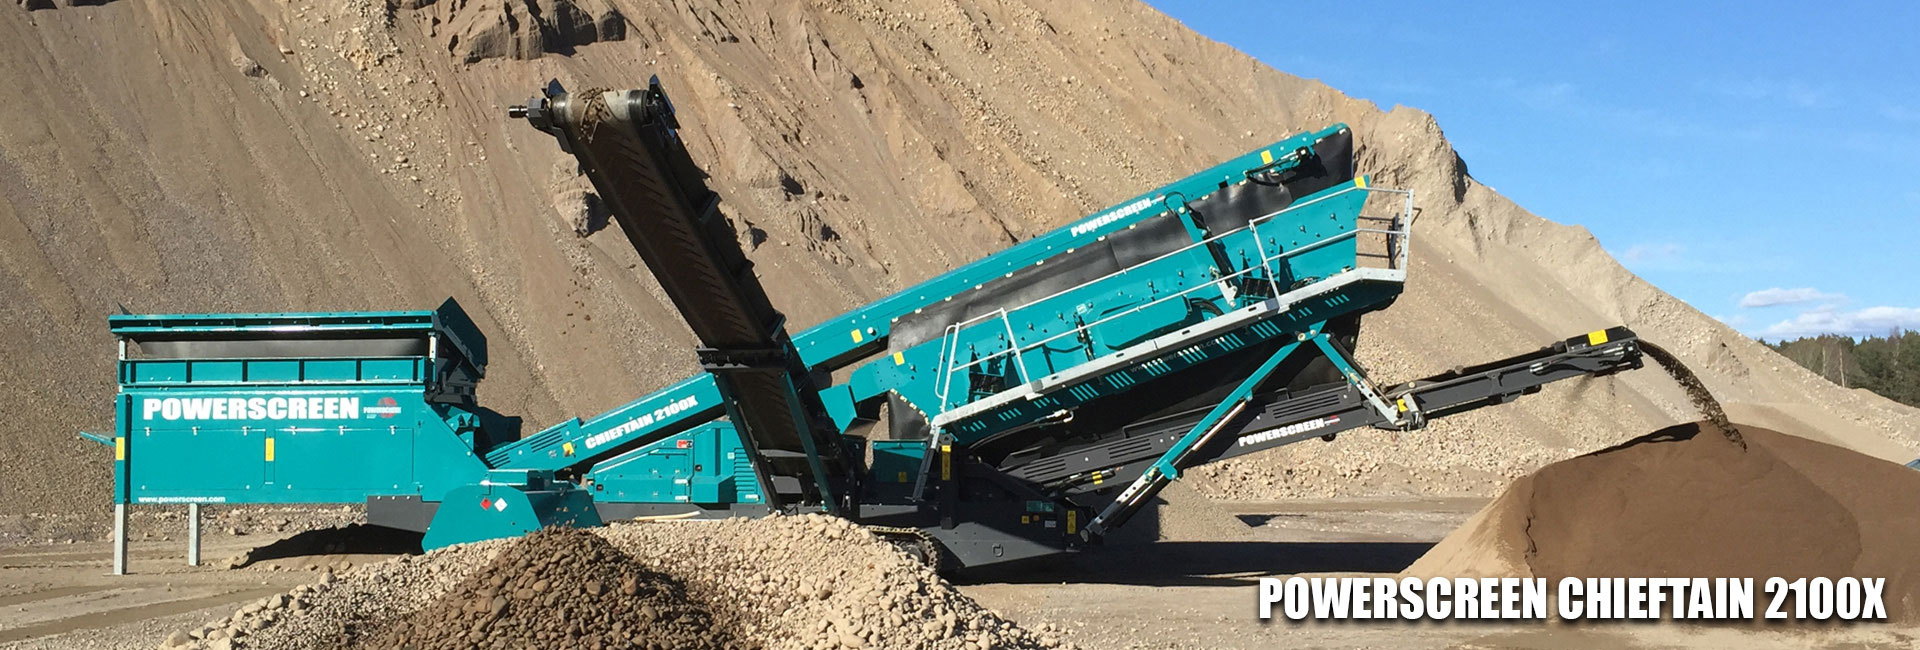 04—POWERSCREEN-CHIEFTAIN-2100X